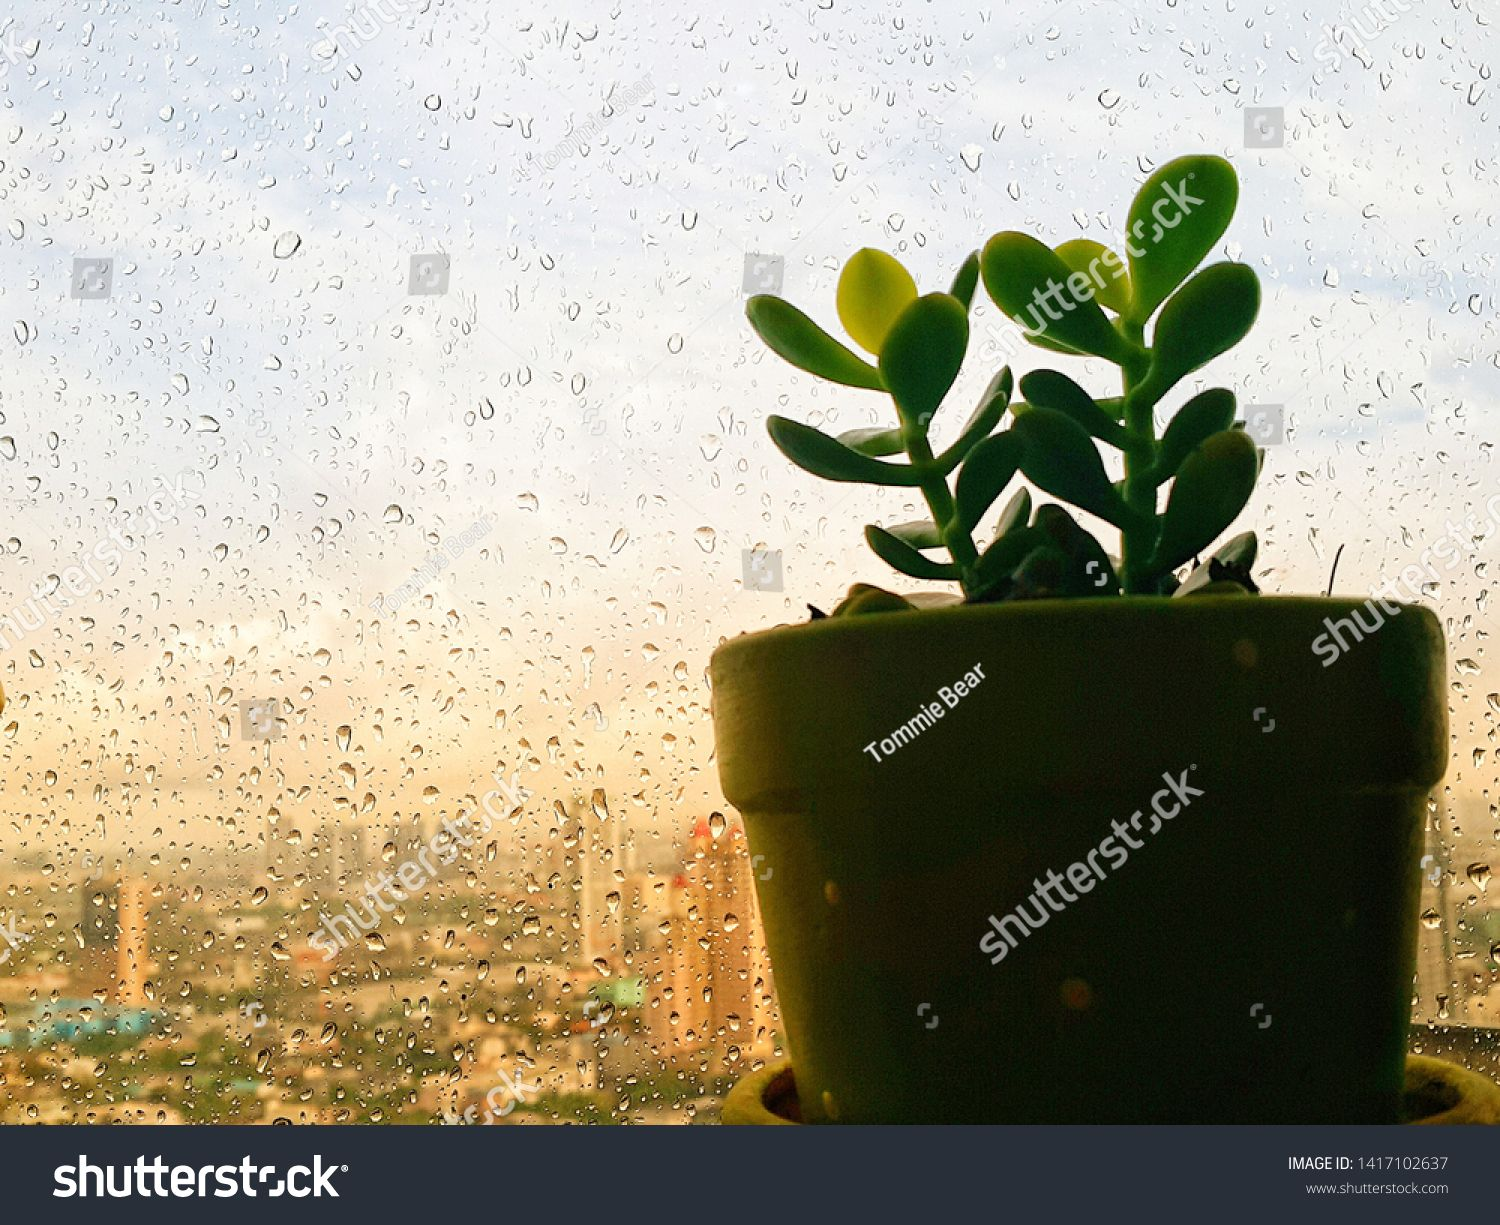 The view from window at indoor plant after the rain. #Sponsored , #spon, #window#view#indoor#rain